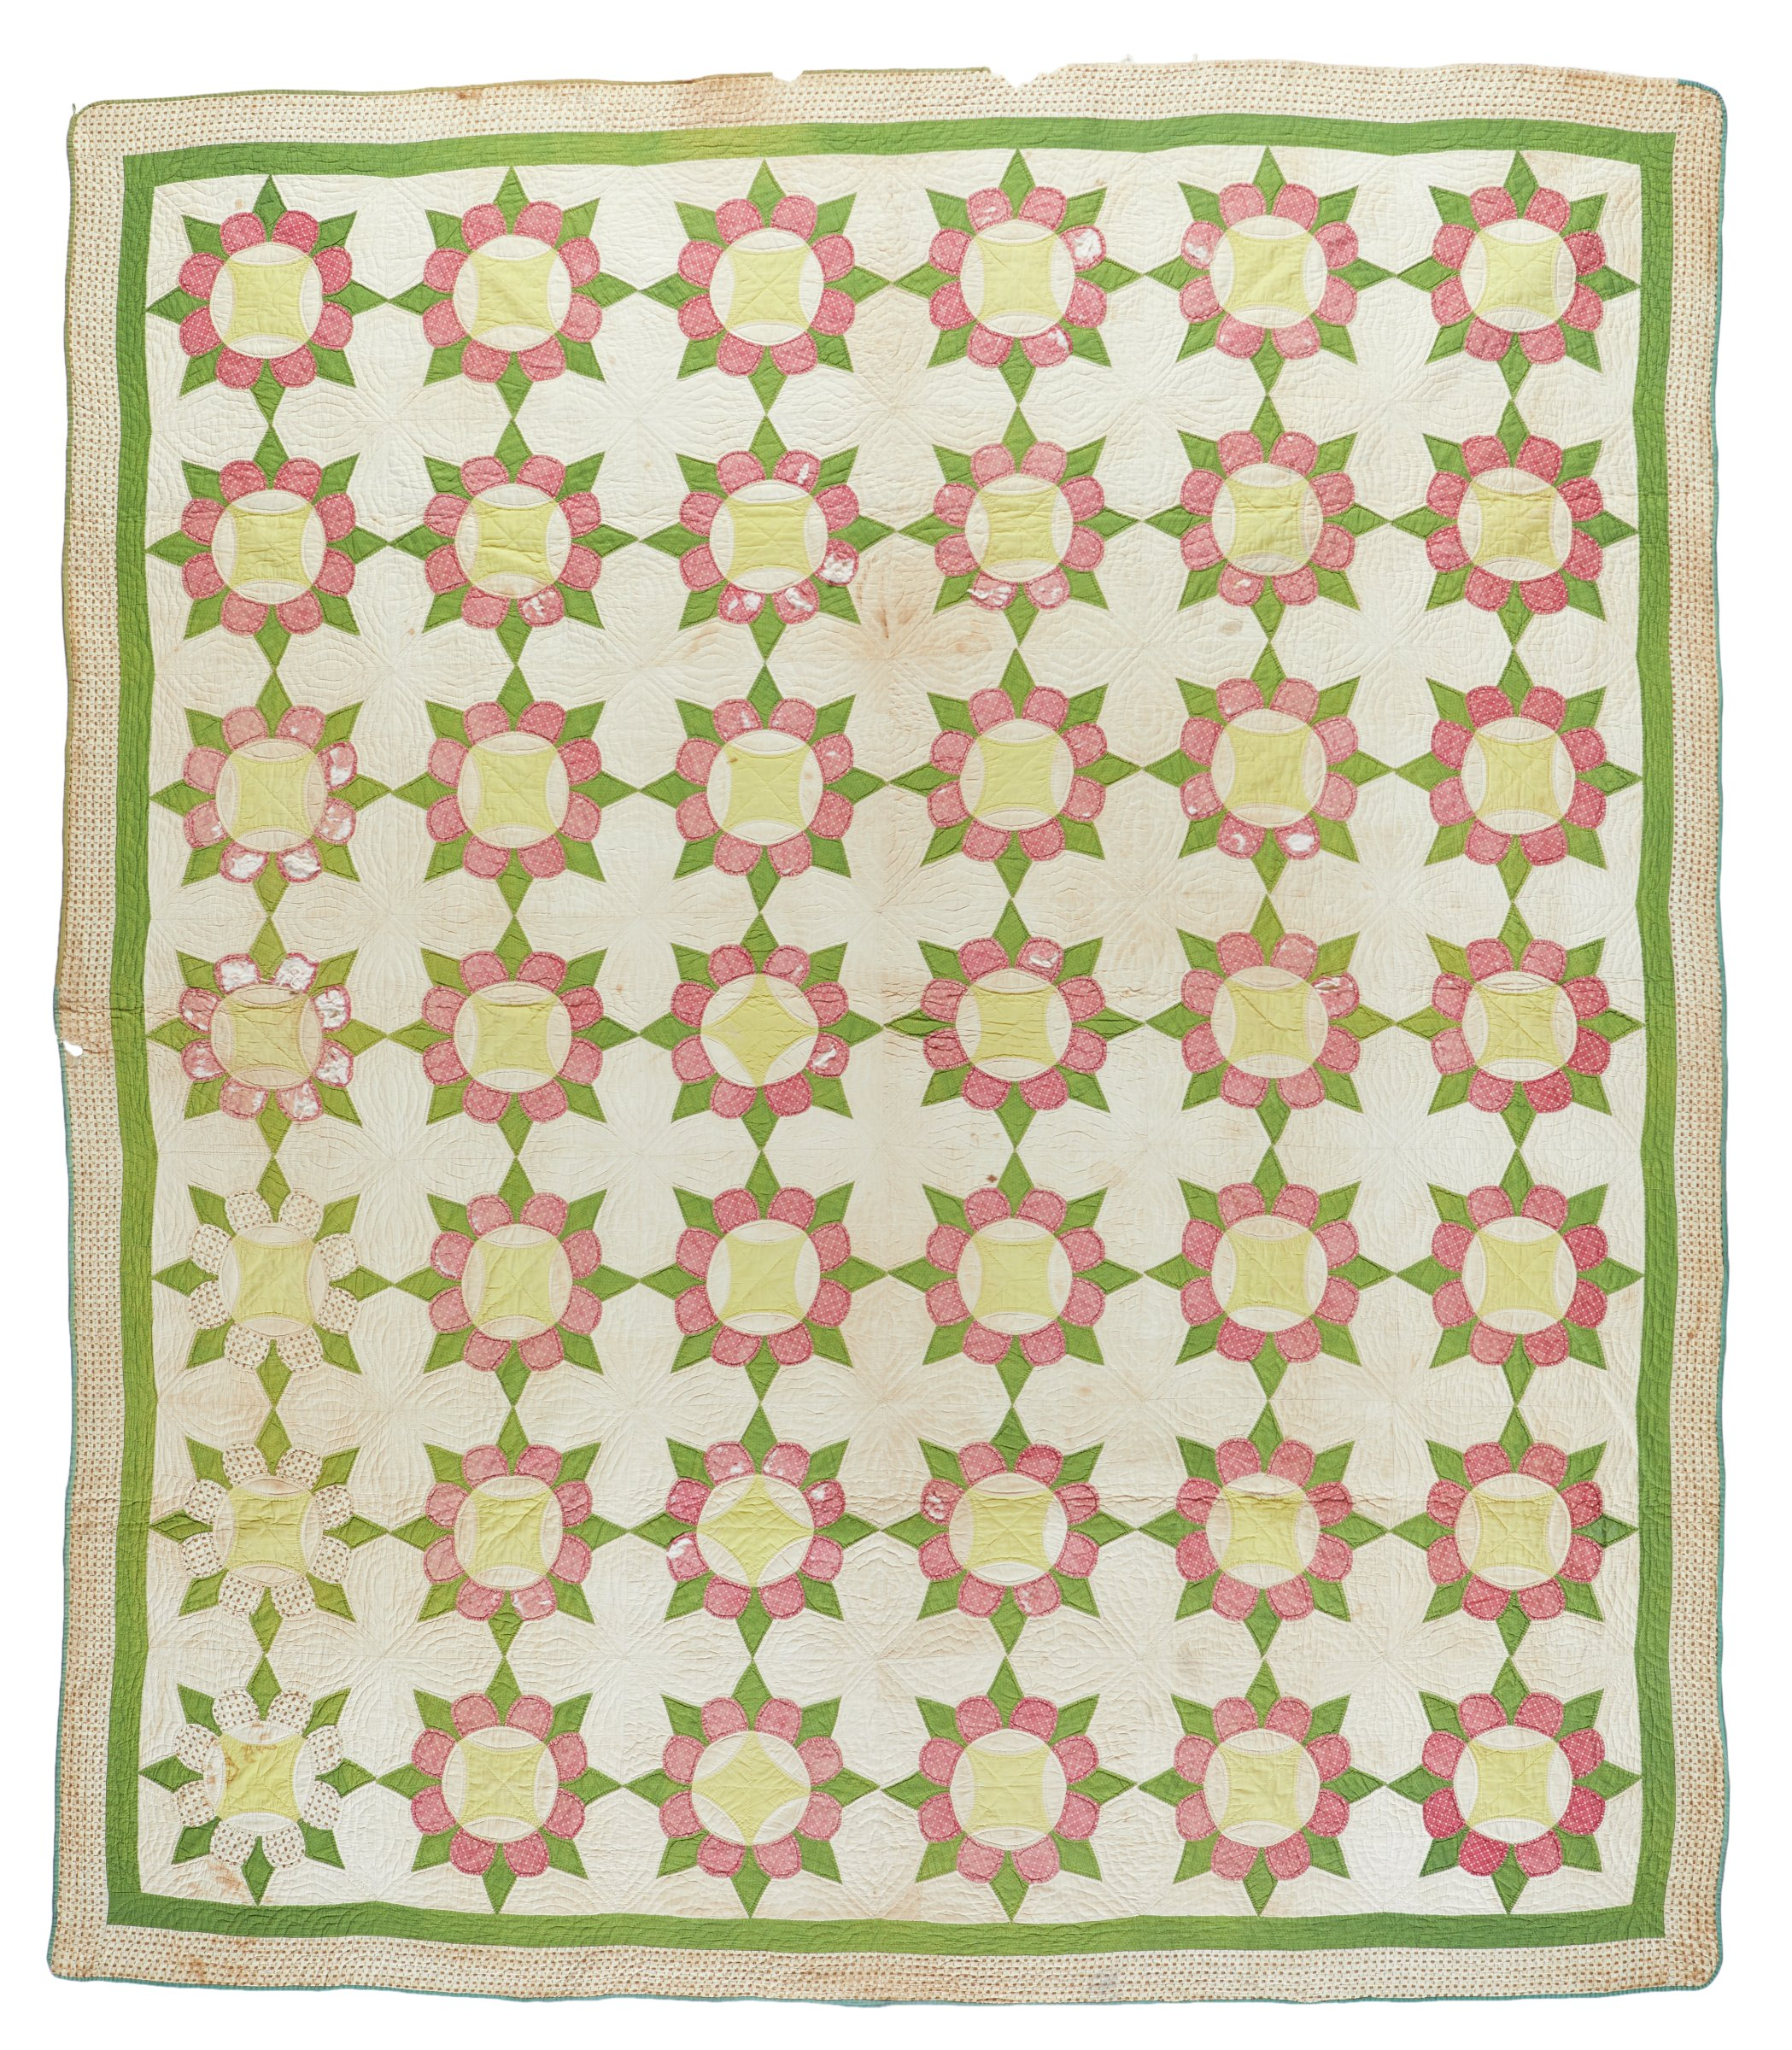 """Large hand-sewn quilt in the """"Caesar's Crown"""" pattern made with a plain cream-colored cotton backing edged in green with a border of tiny brown flowers on an ivory ground and an interior border in a green print, the top of the quilt with a cream-colored ground and a grid of red circles with green spikes and yellow reel centers that together form the image of a kind of crown, three of the circles of brown and cream printed fabric instead of red."""